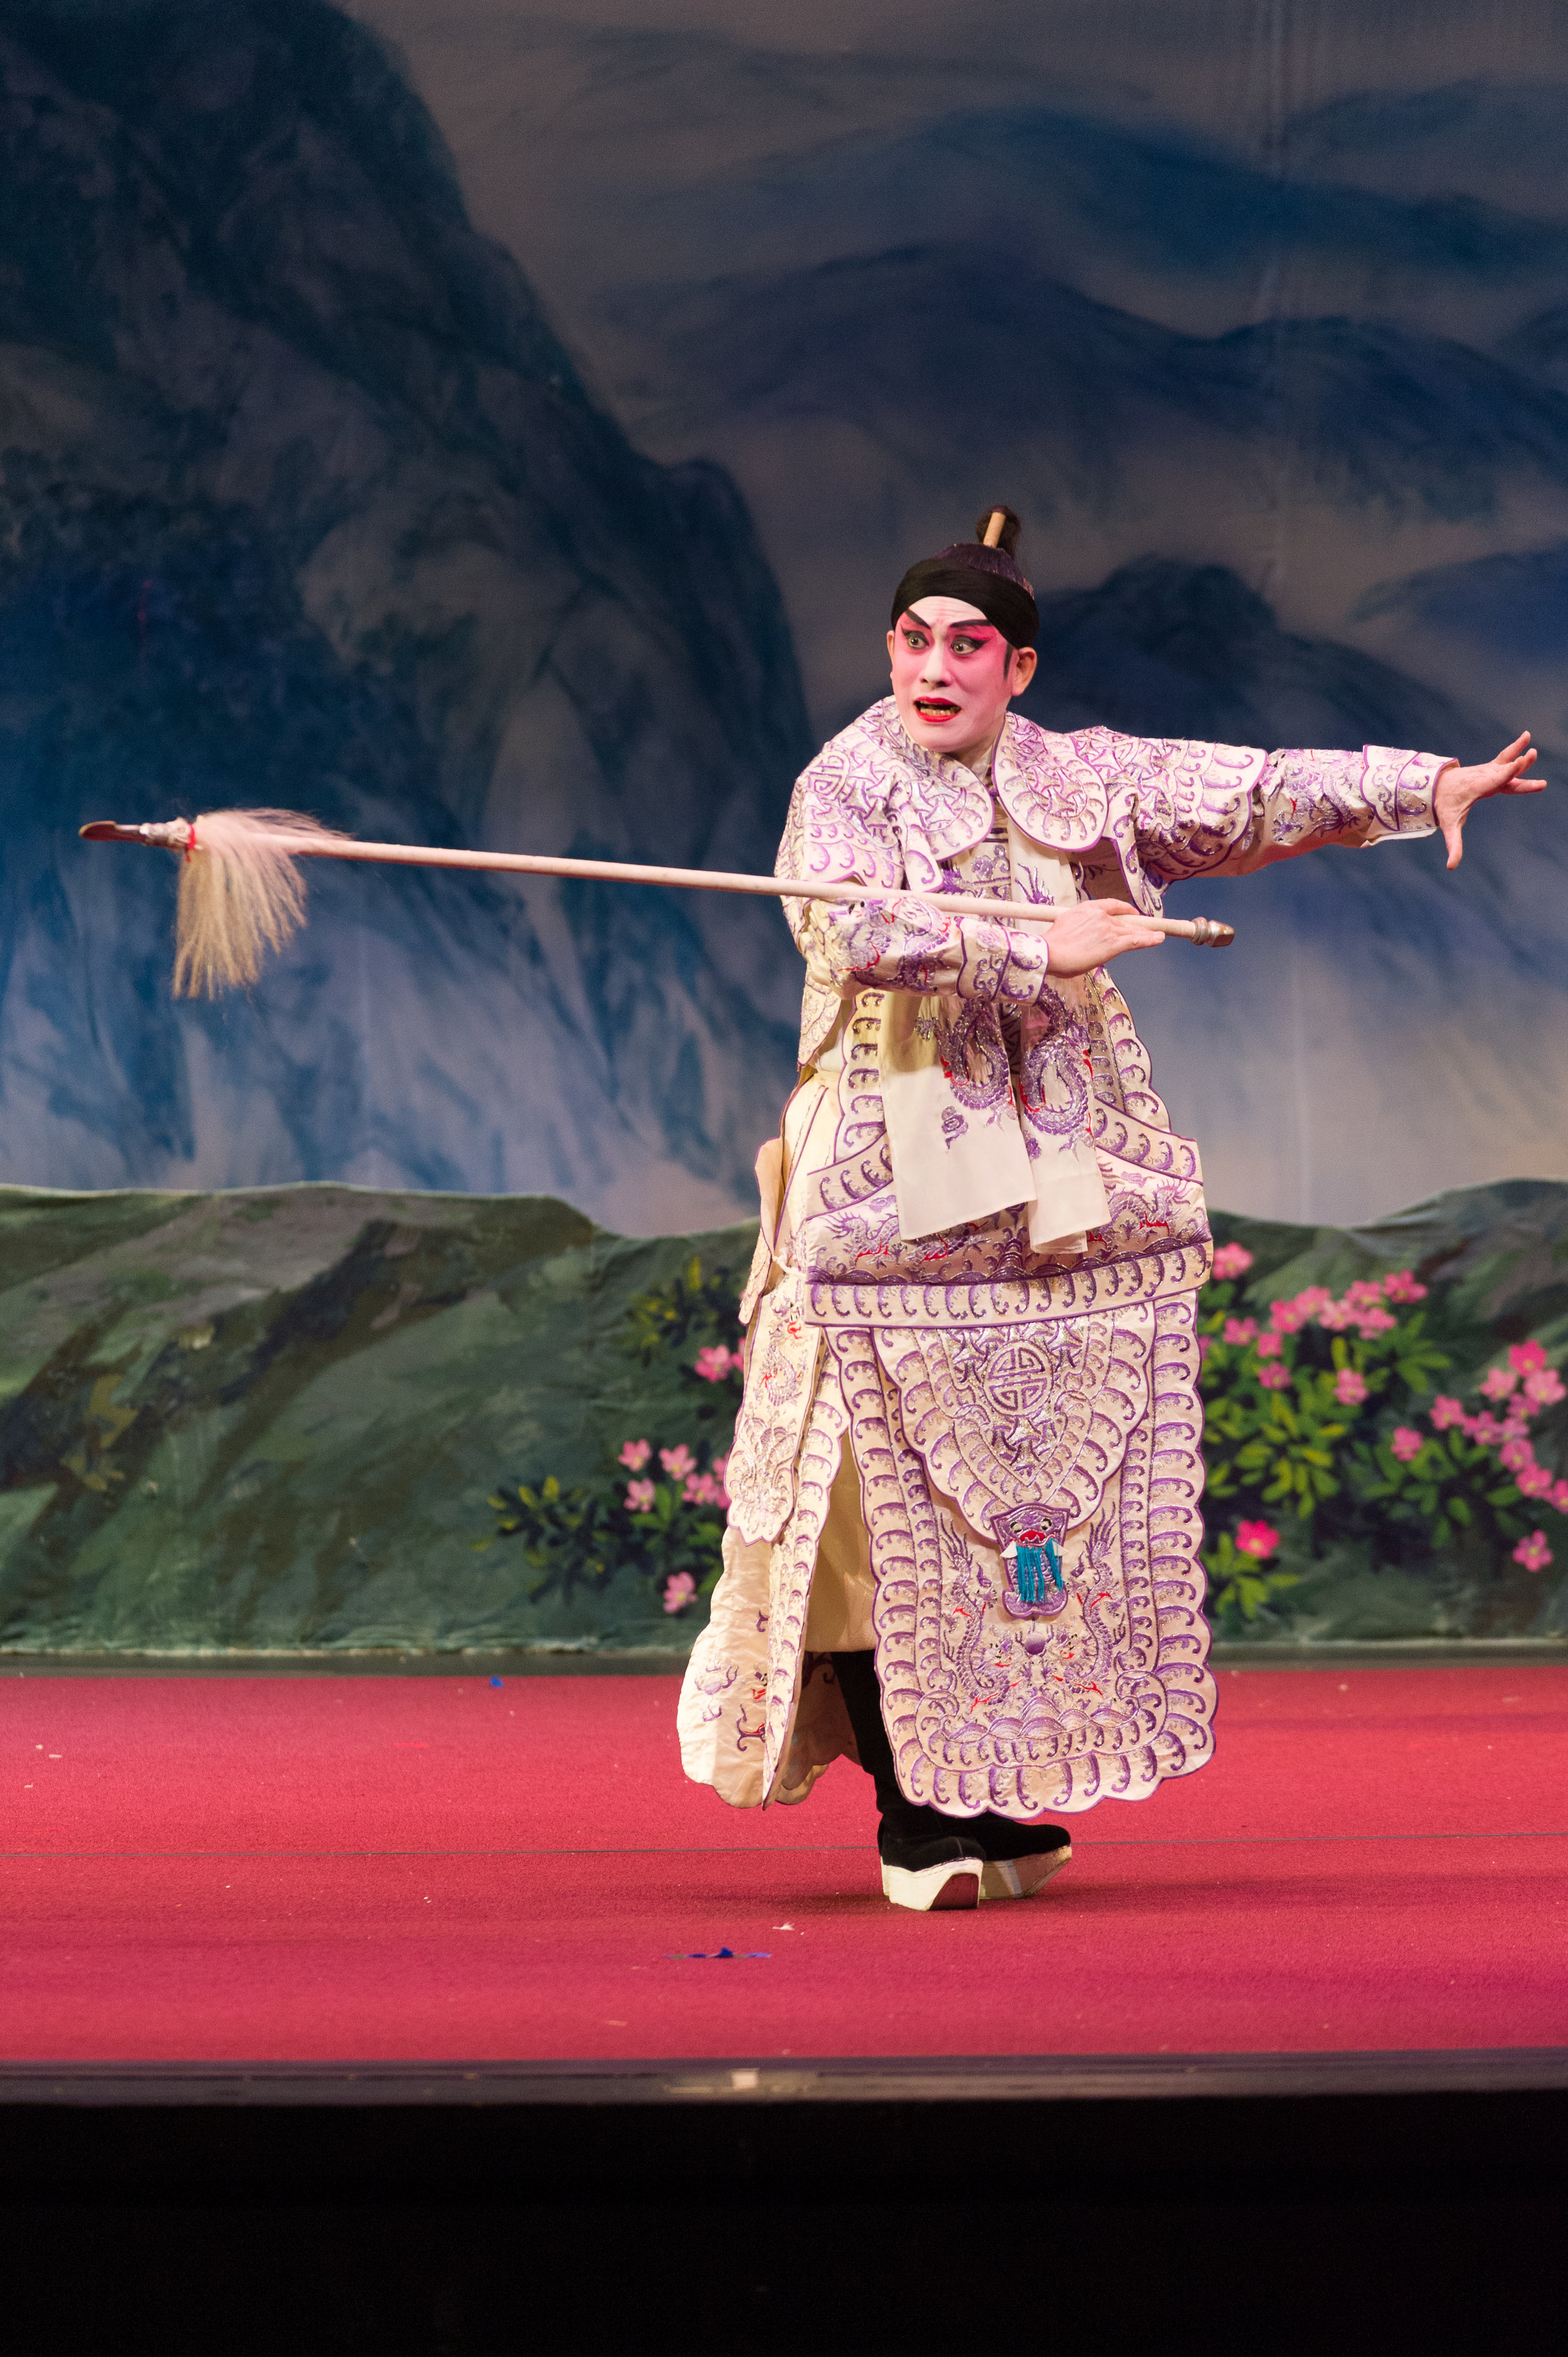 Red.Bean.Cantonese.Opera.Performance.Show.2014.July.27.2014.1407.jpg